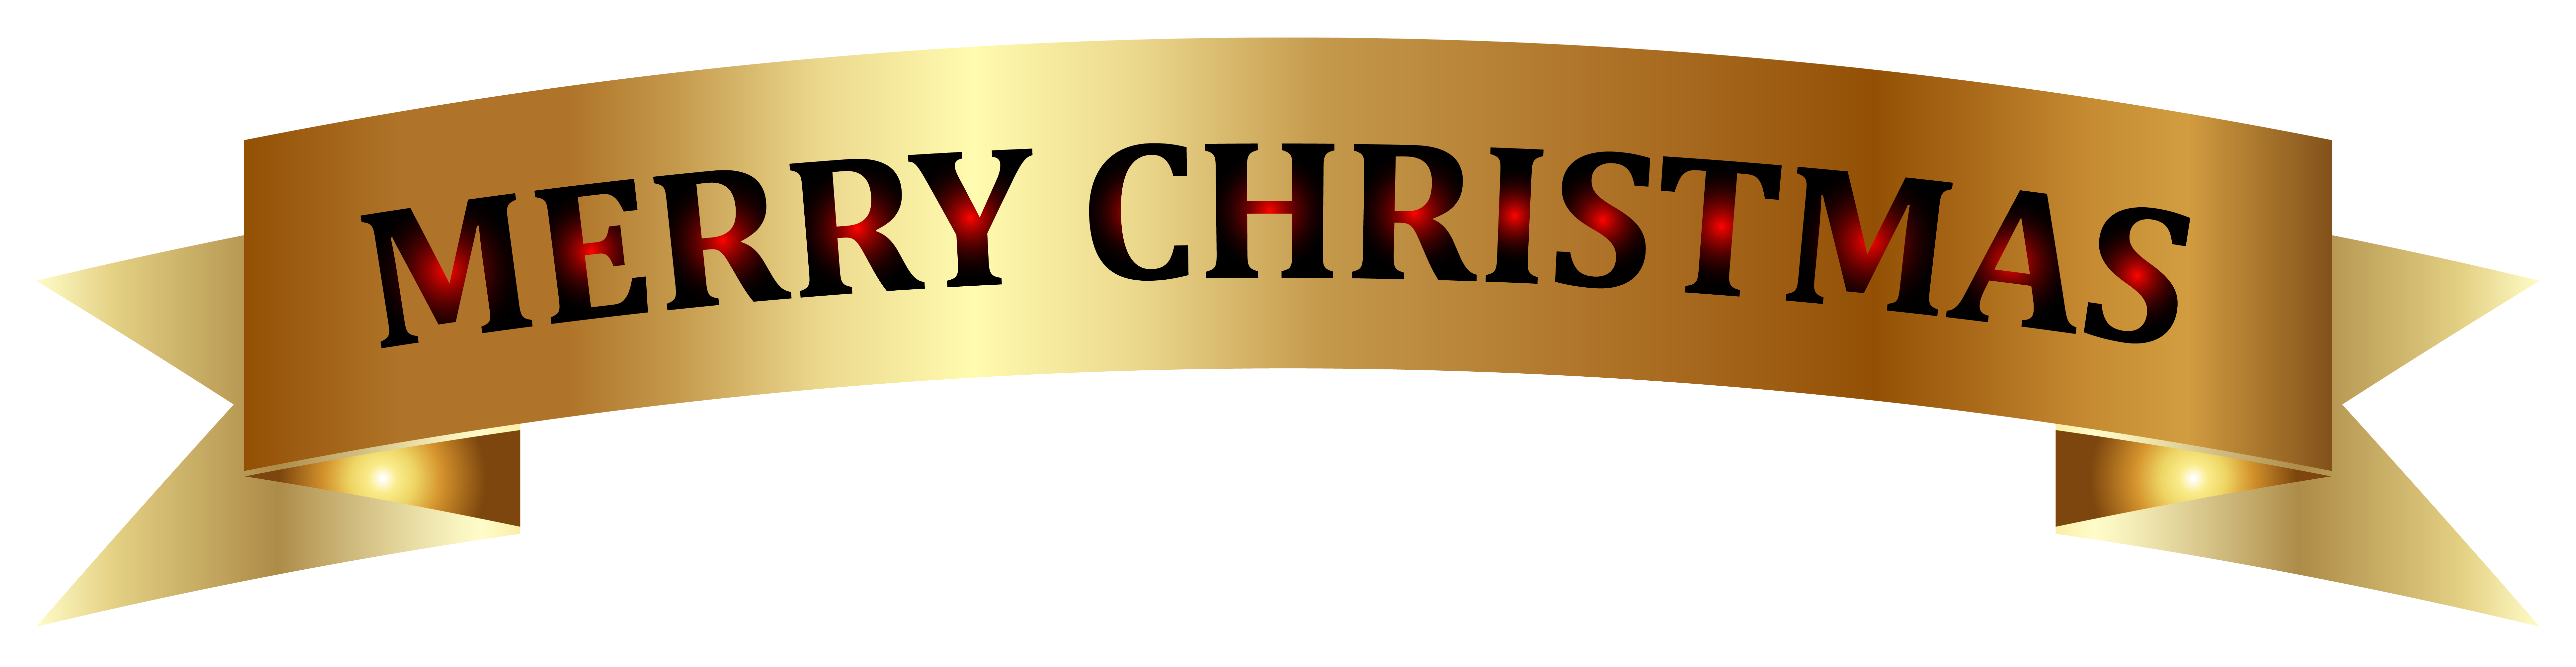 Merry christmas acur lunamedia. Clipart png banner